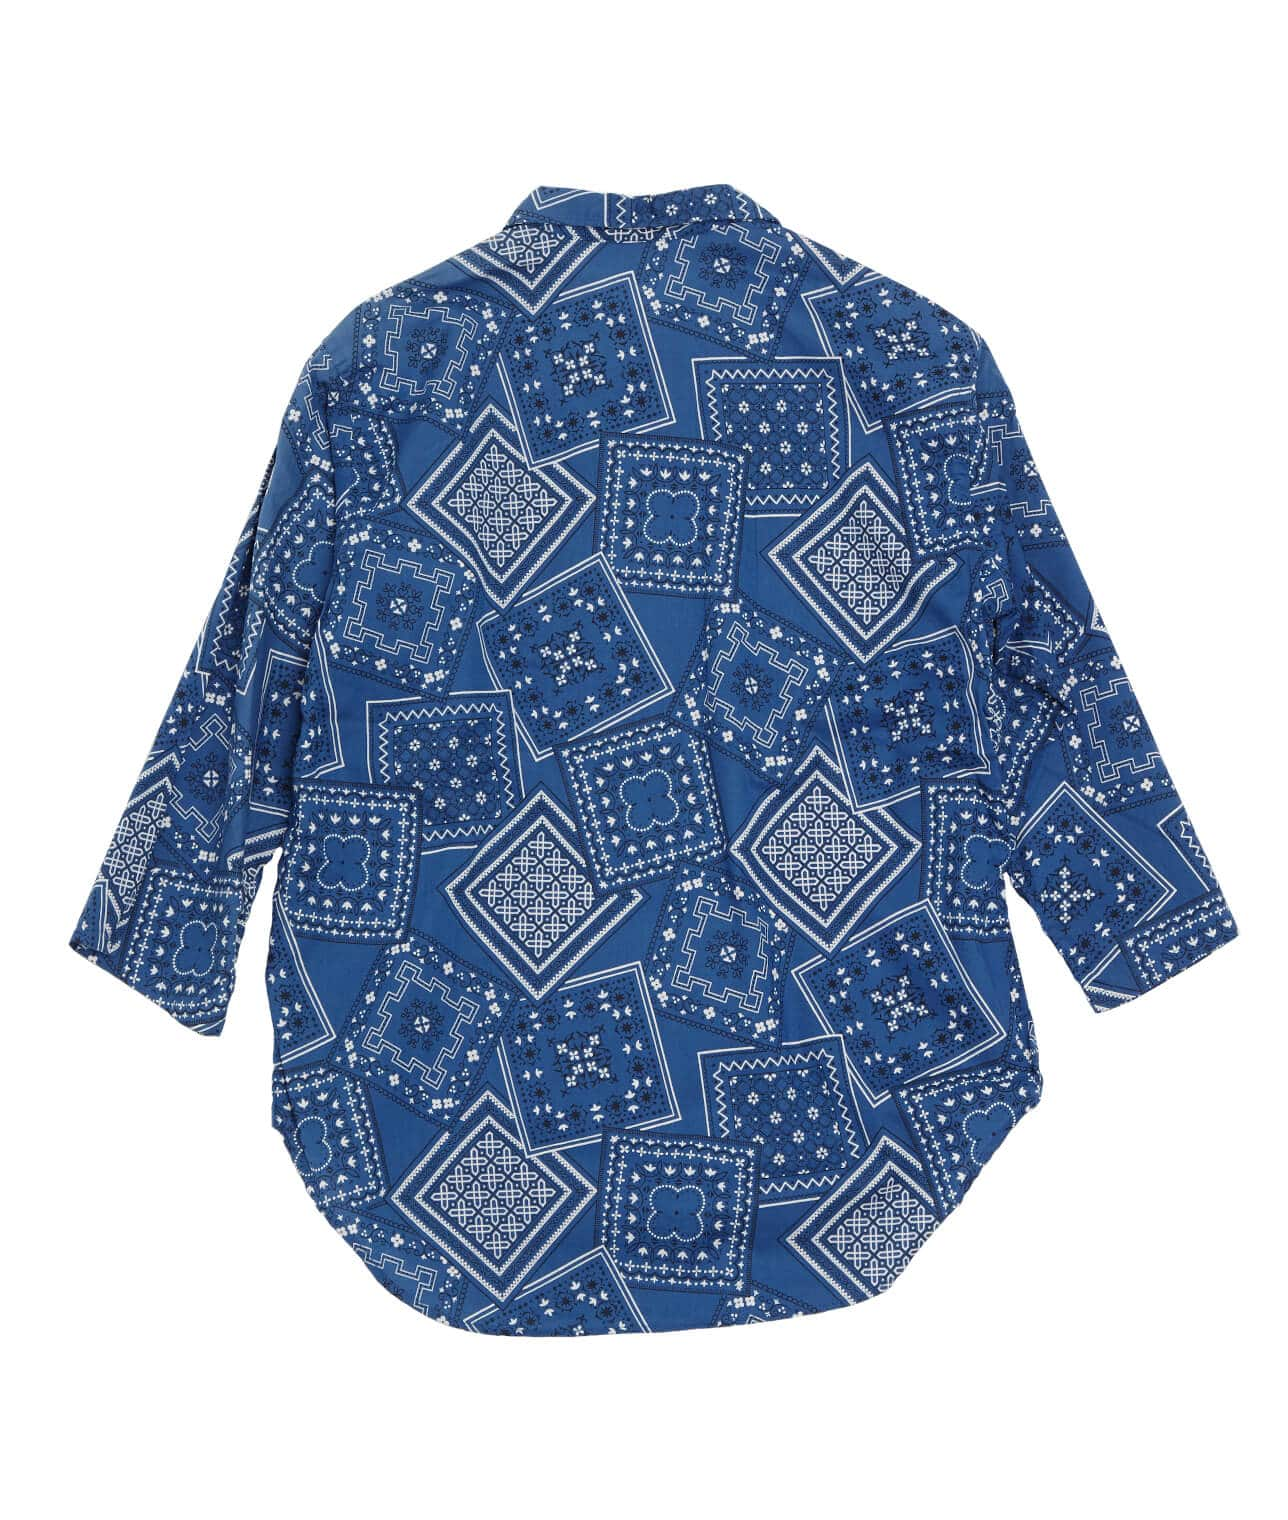 USED/BANDANA PATTERN ALL PRINT LOOP SHIRT  詳細画像 BLUE 2